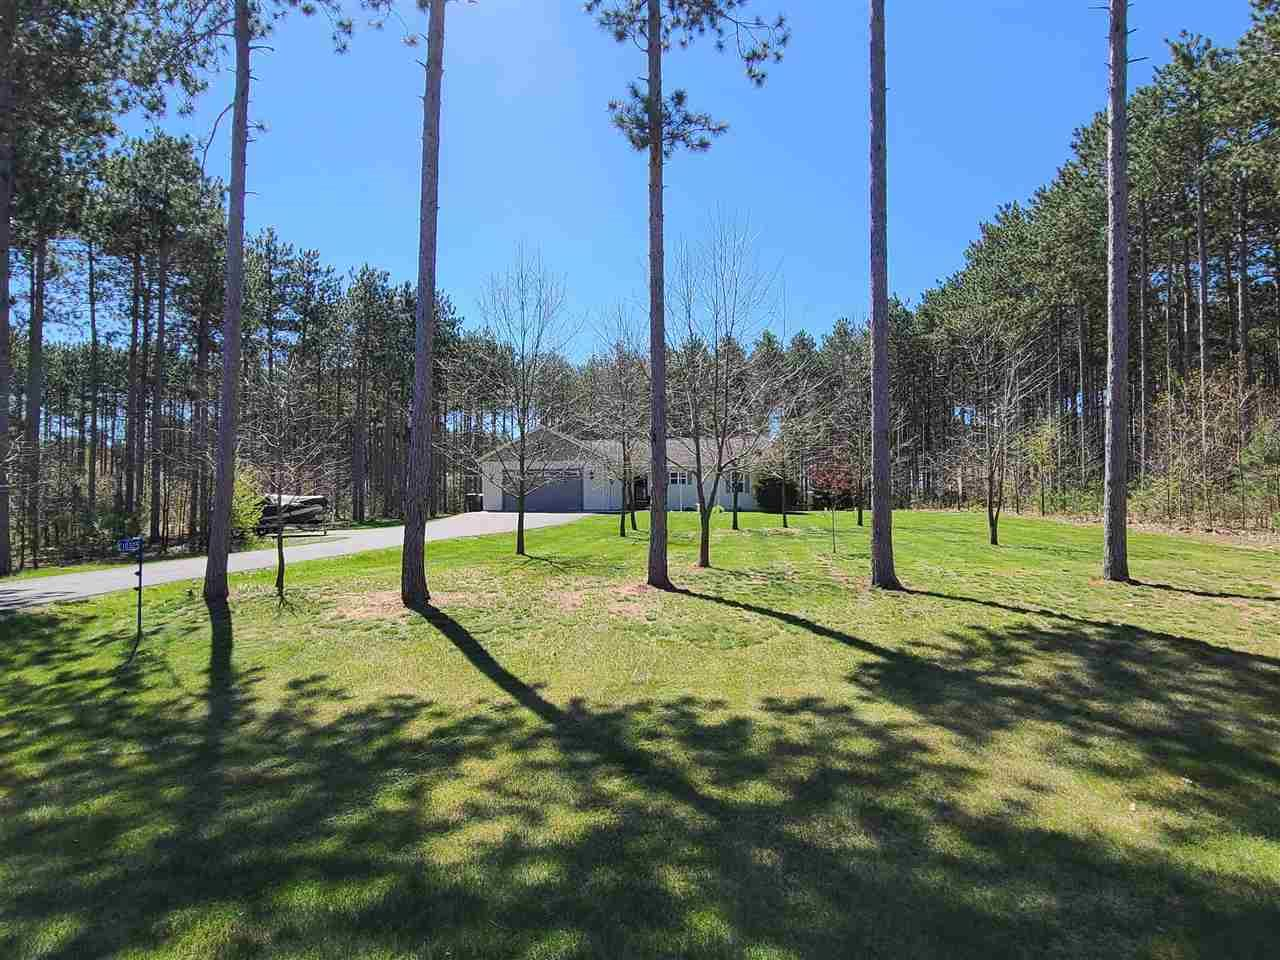 E10325 Forest Rd, Baraboo, WI 53913 - #: 1908184